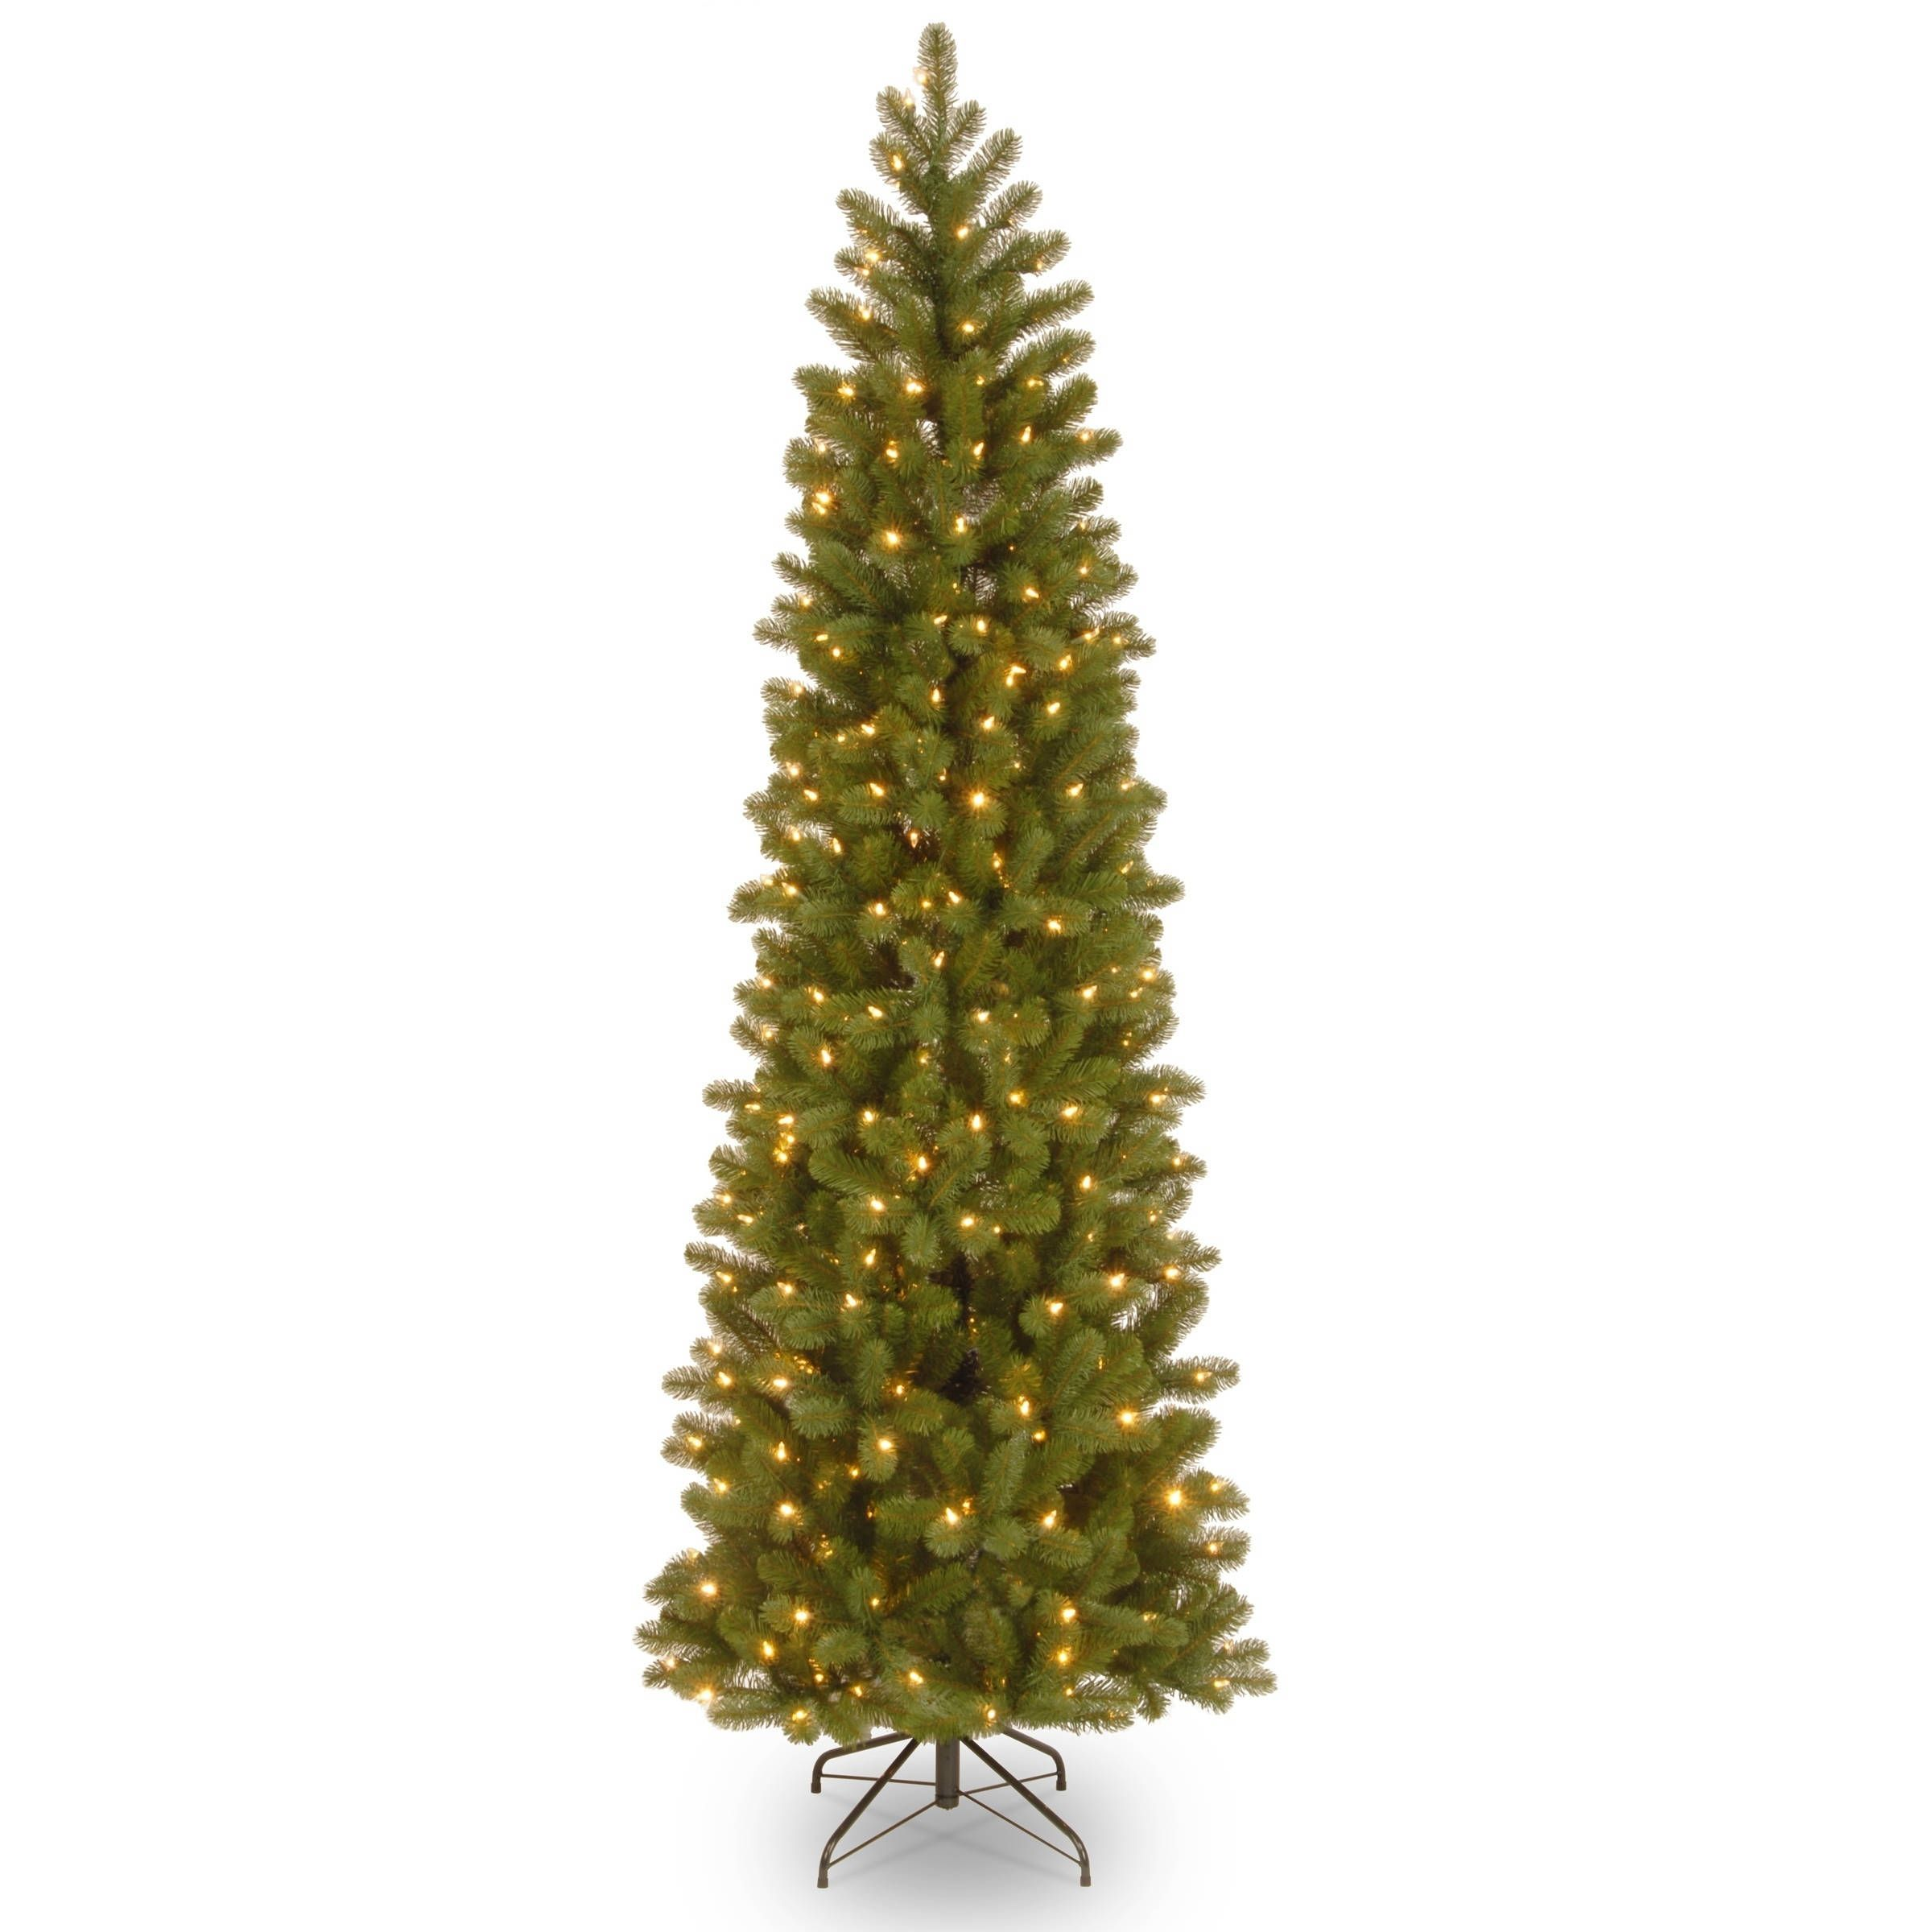 6 5 Ft Downswept Douglas Pencil Slim Fir Tree With Clear Lights Green National T Douglas Fir Christmas Tree Fir Christmas Tree